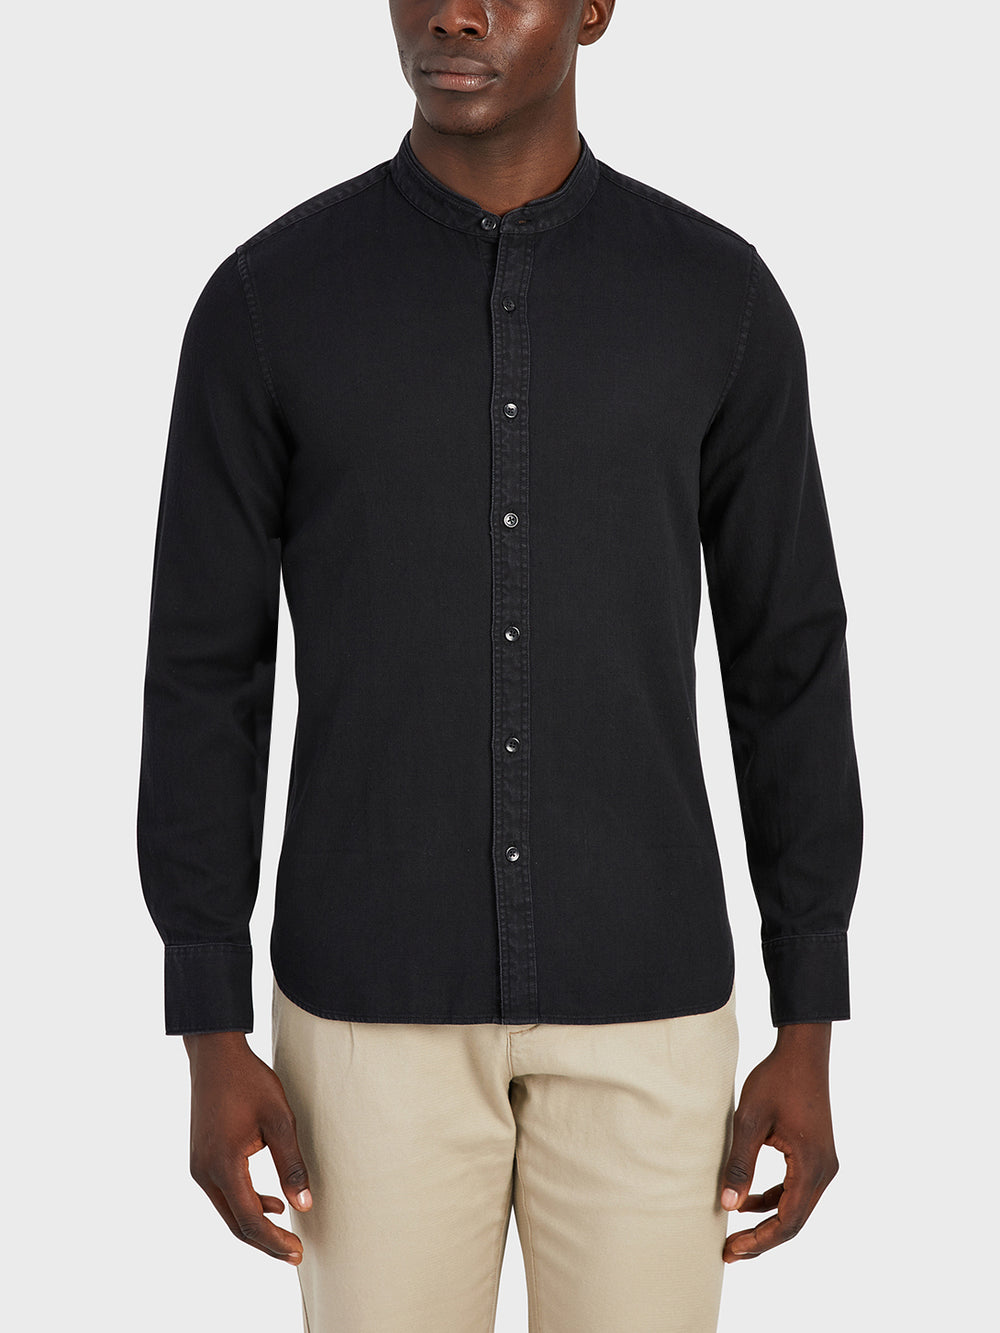 black friday deals ONS Clothing Men's shirt in BLACK